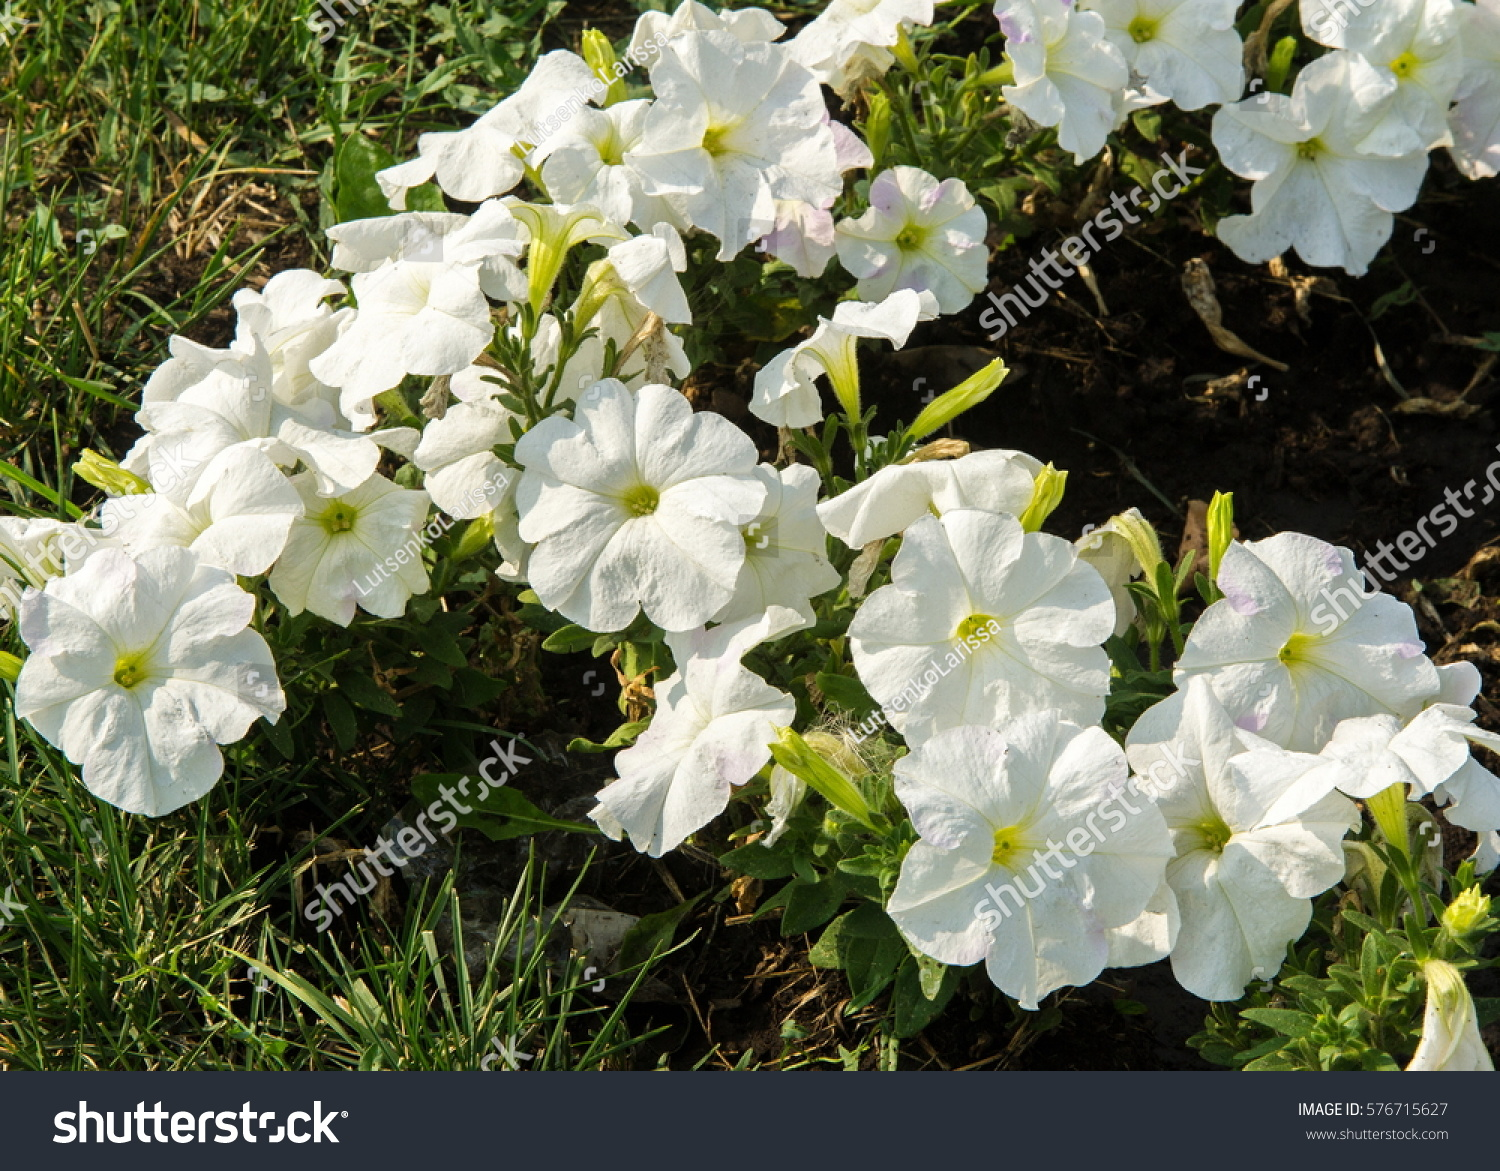 petunia flowers. a plant of the nightshade family with brightly ...